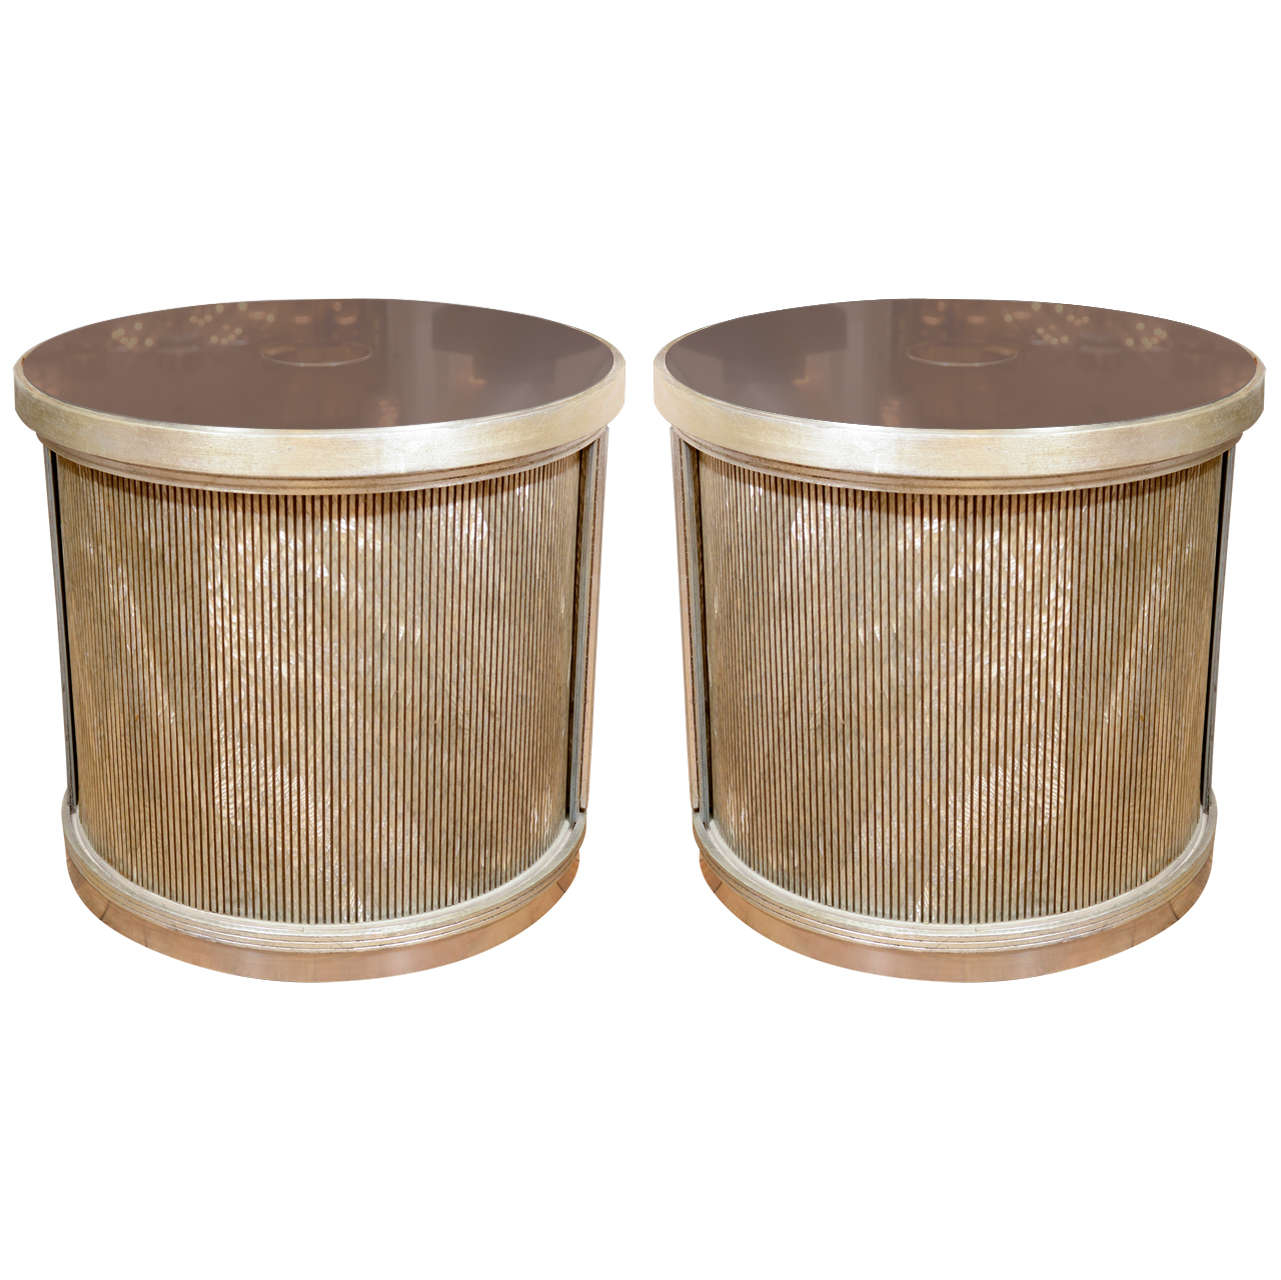 Pair Of Drum Form Side Tables With Sliding Door And Faux Finish Details For Sale